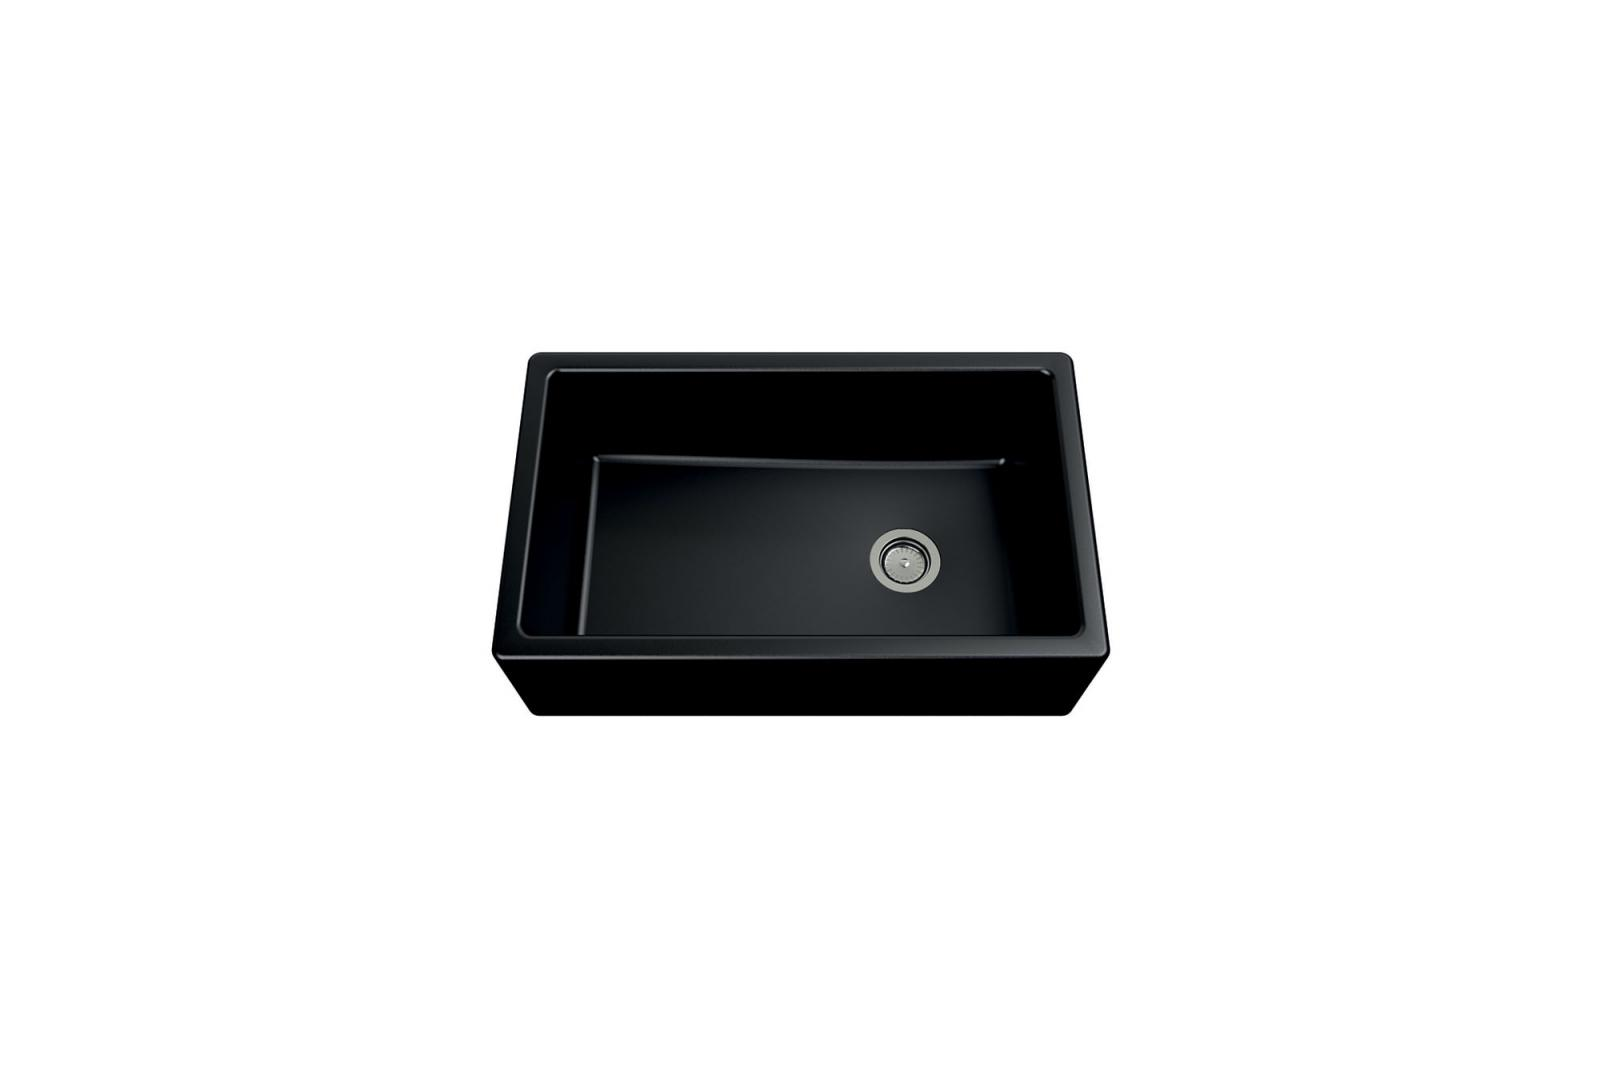 High-quality sink Philippe granit black - one bowl